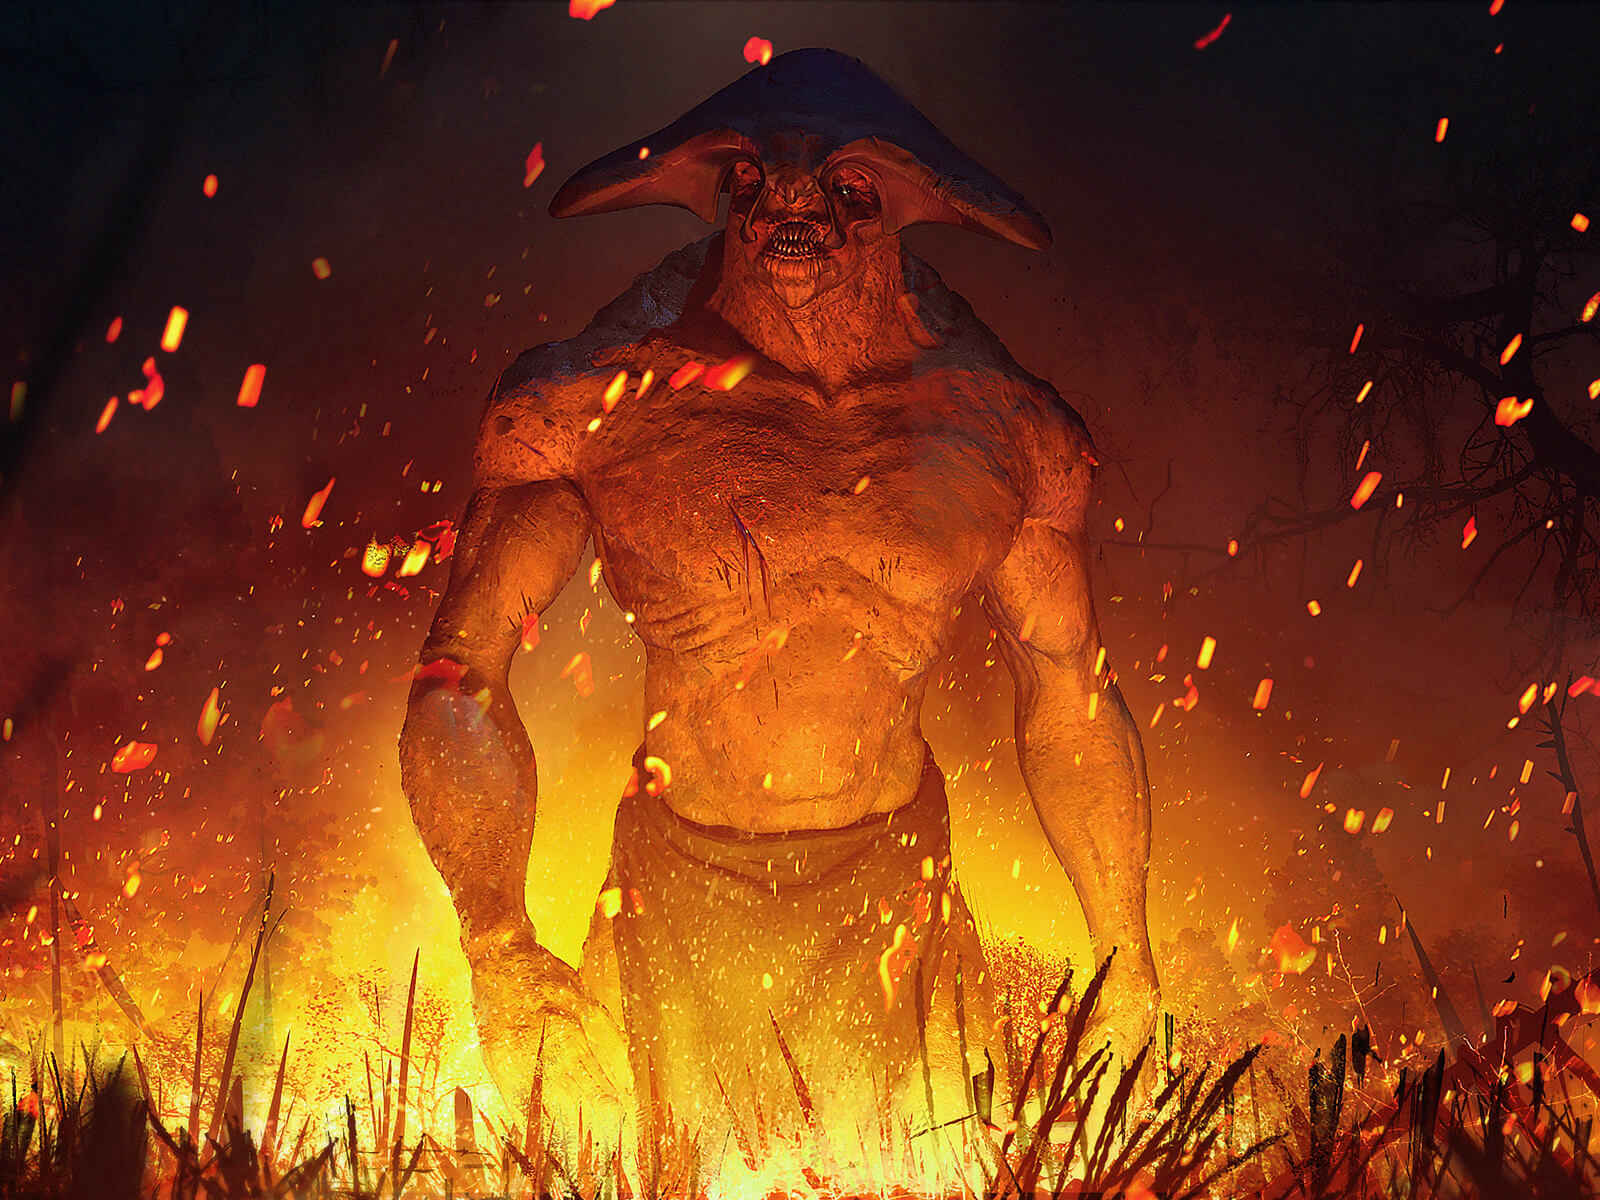 A large man-like creature with a winged bony head piece stands in fire